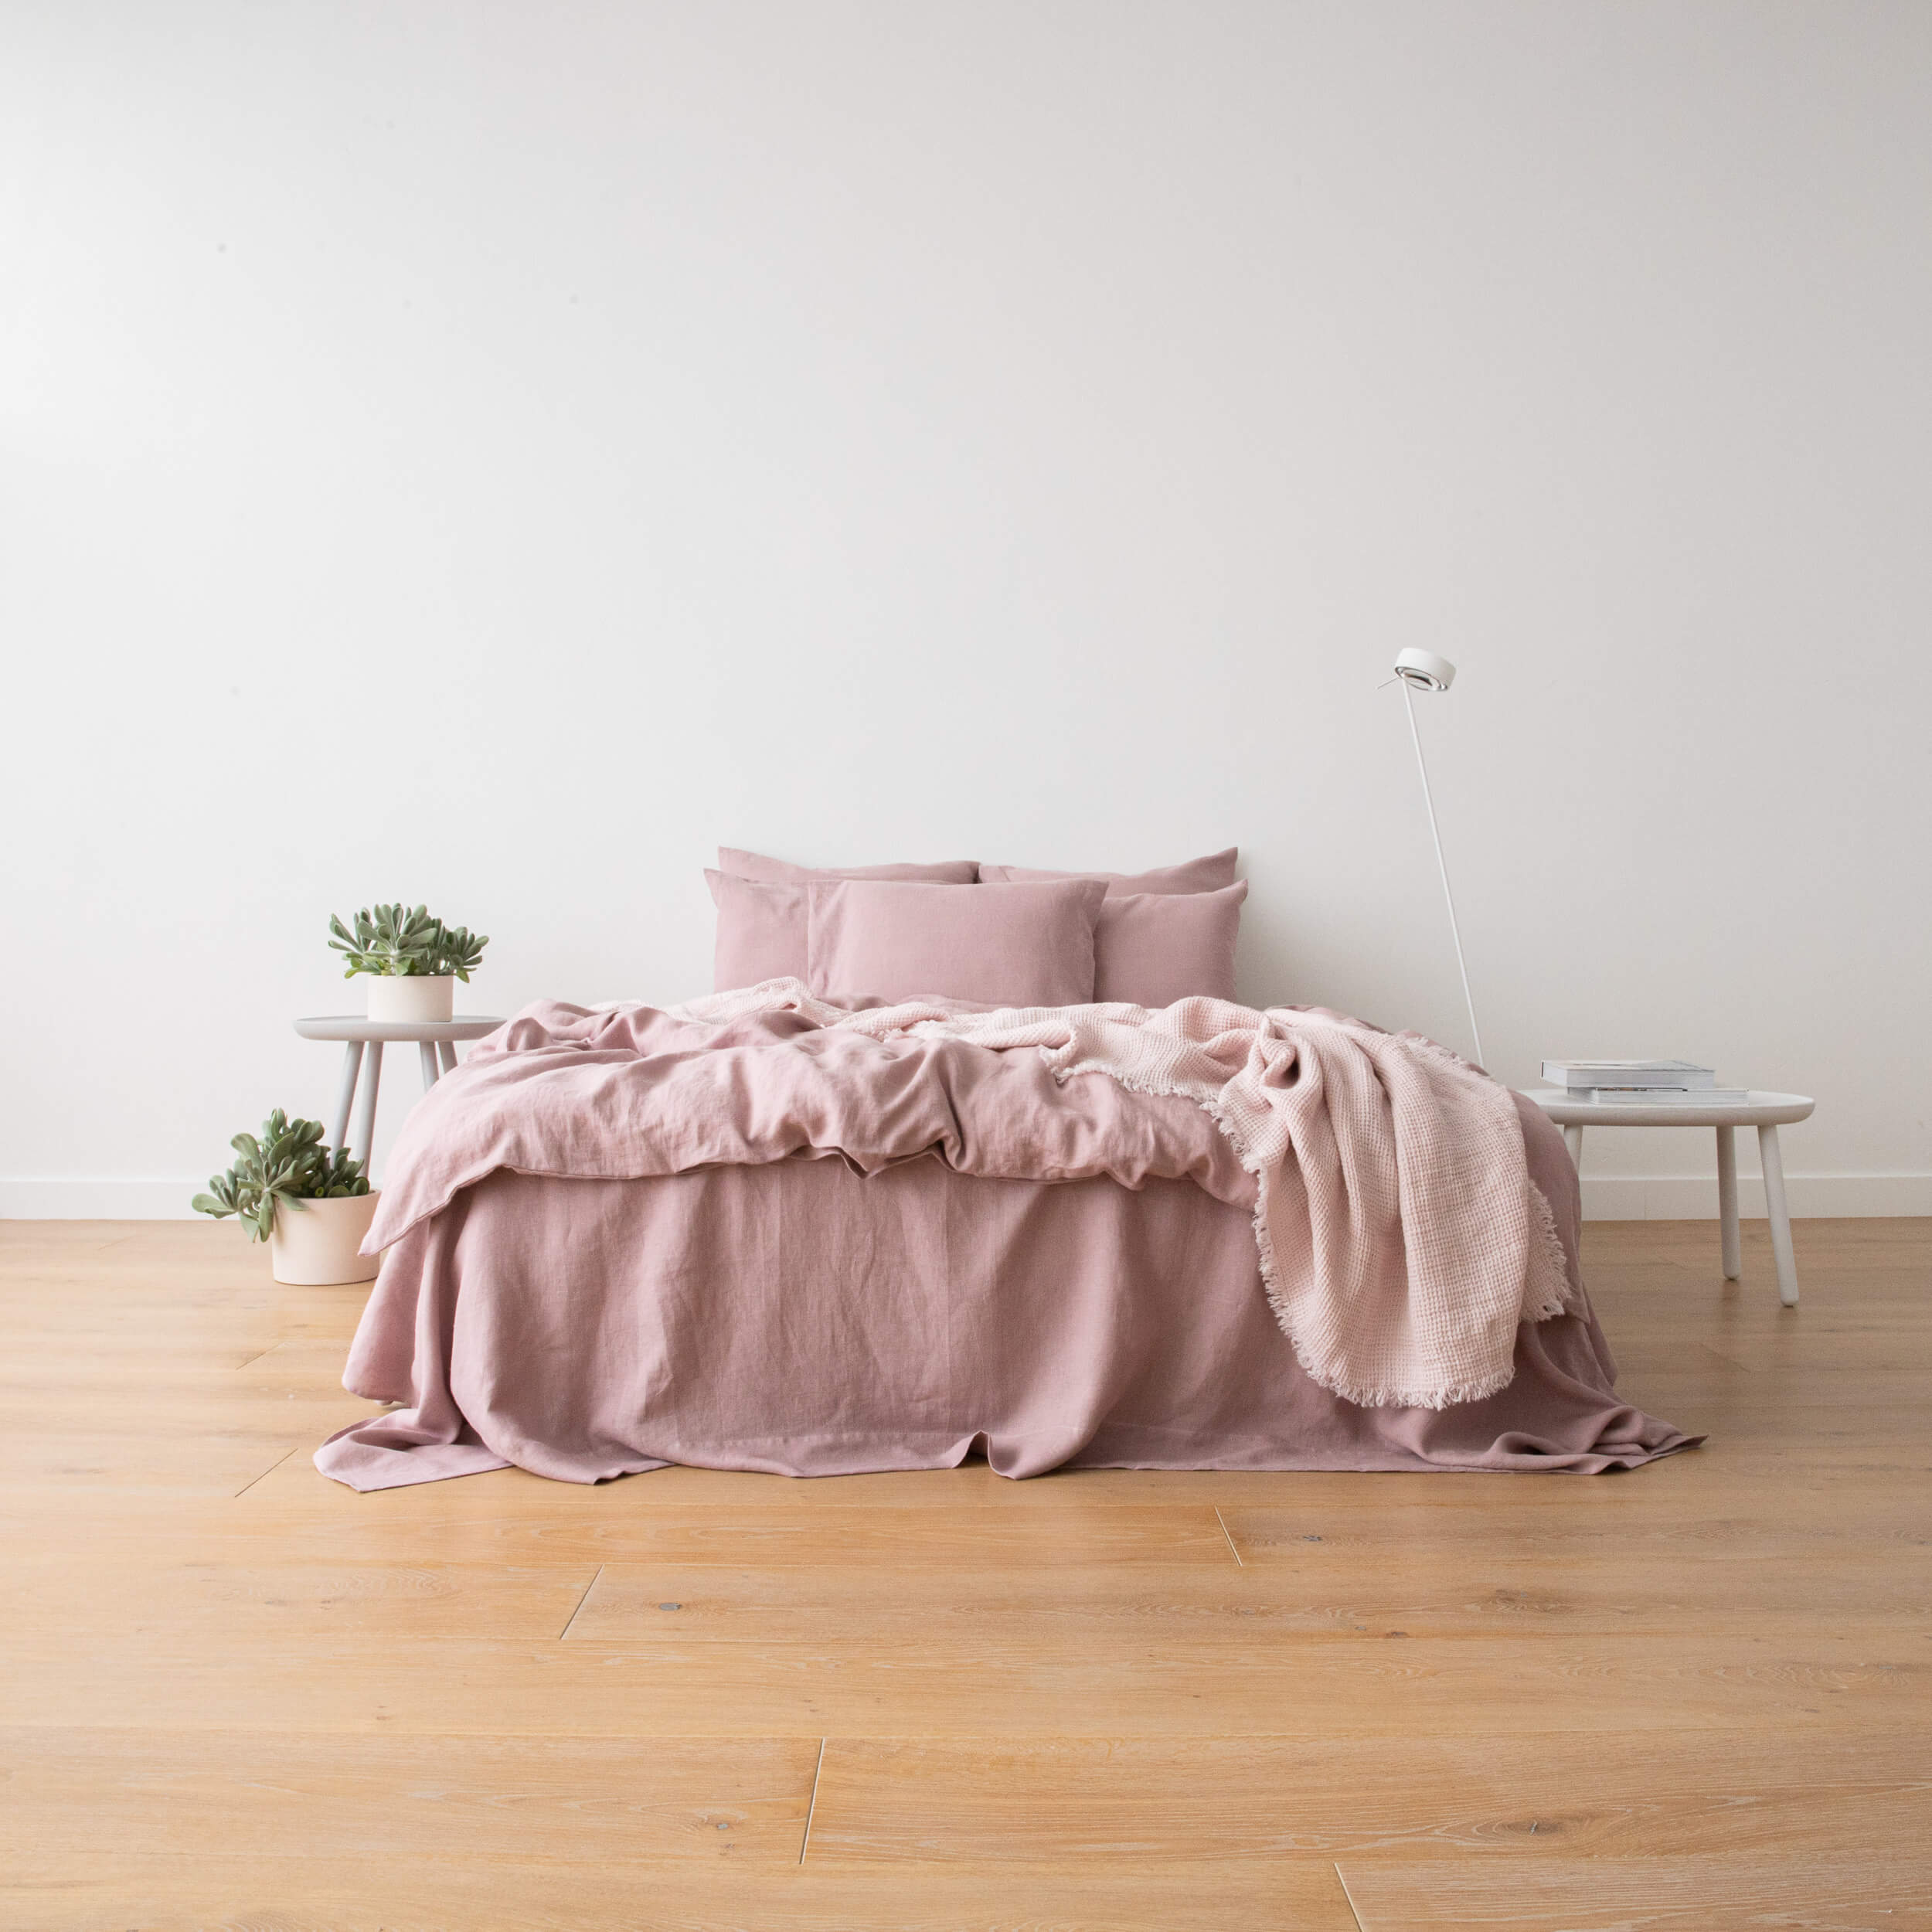 10 Reasons To Love Linen Bedding Bed Linen Linenme News